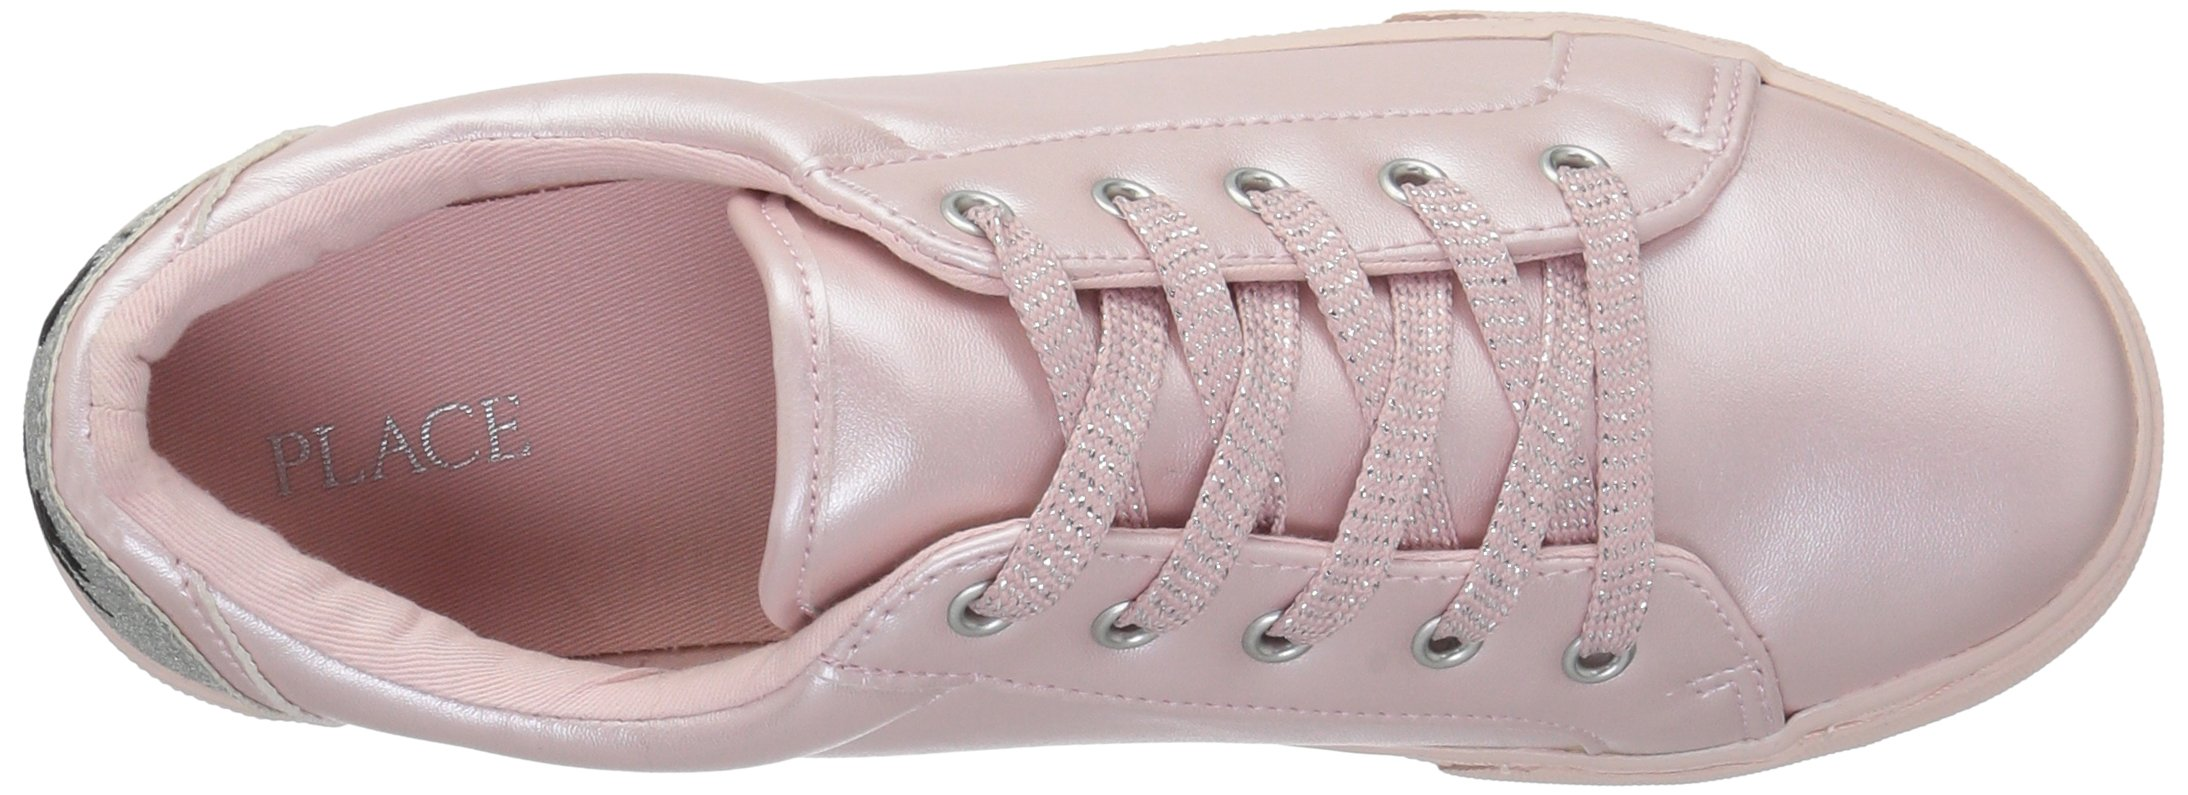 The Children's Place Girls' BG Emoji Sneaker, Pink, Youth 4 Medium US Big Kid by The Children's Place (Image #8)